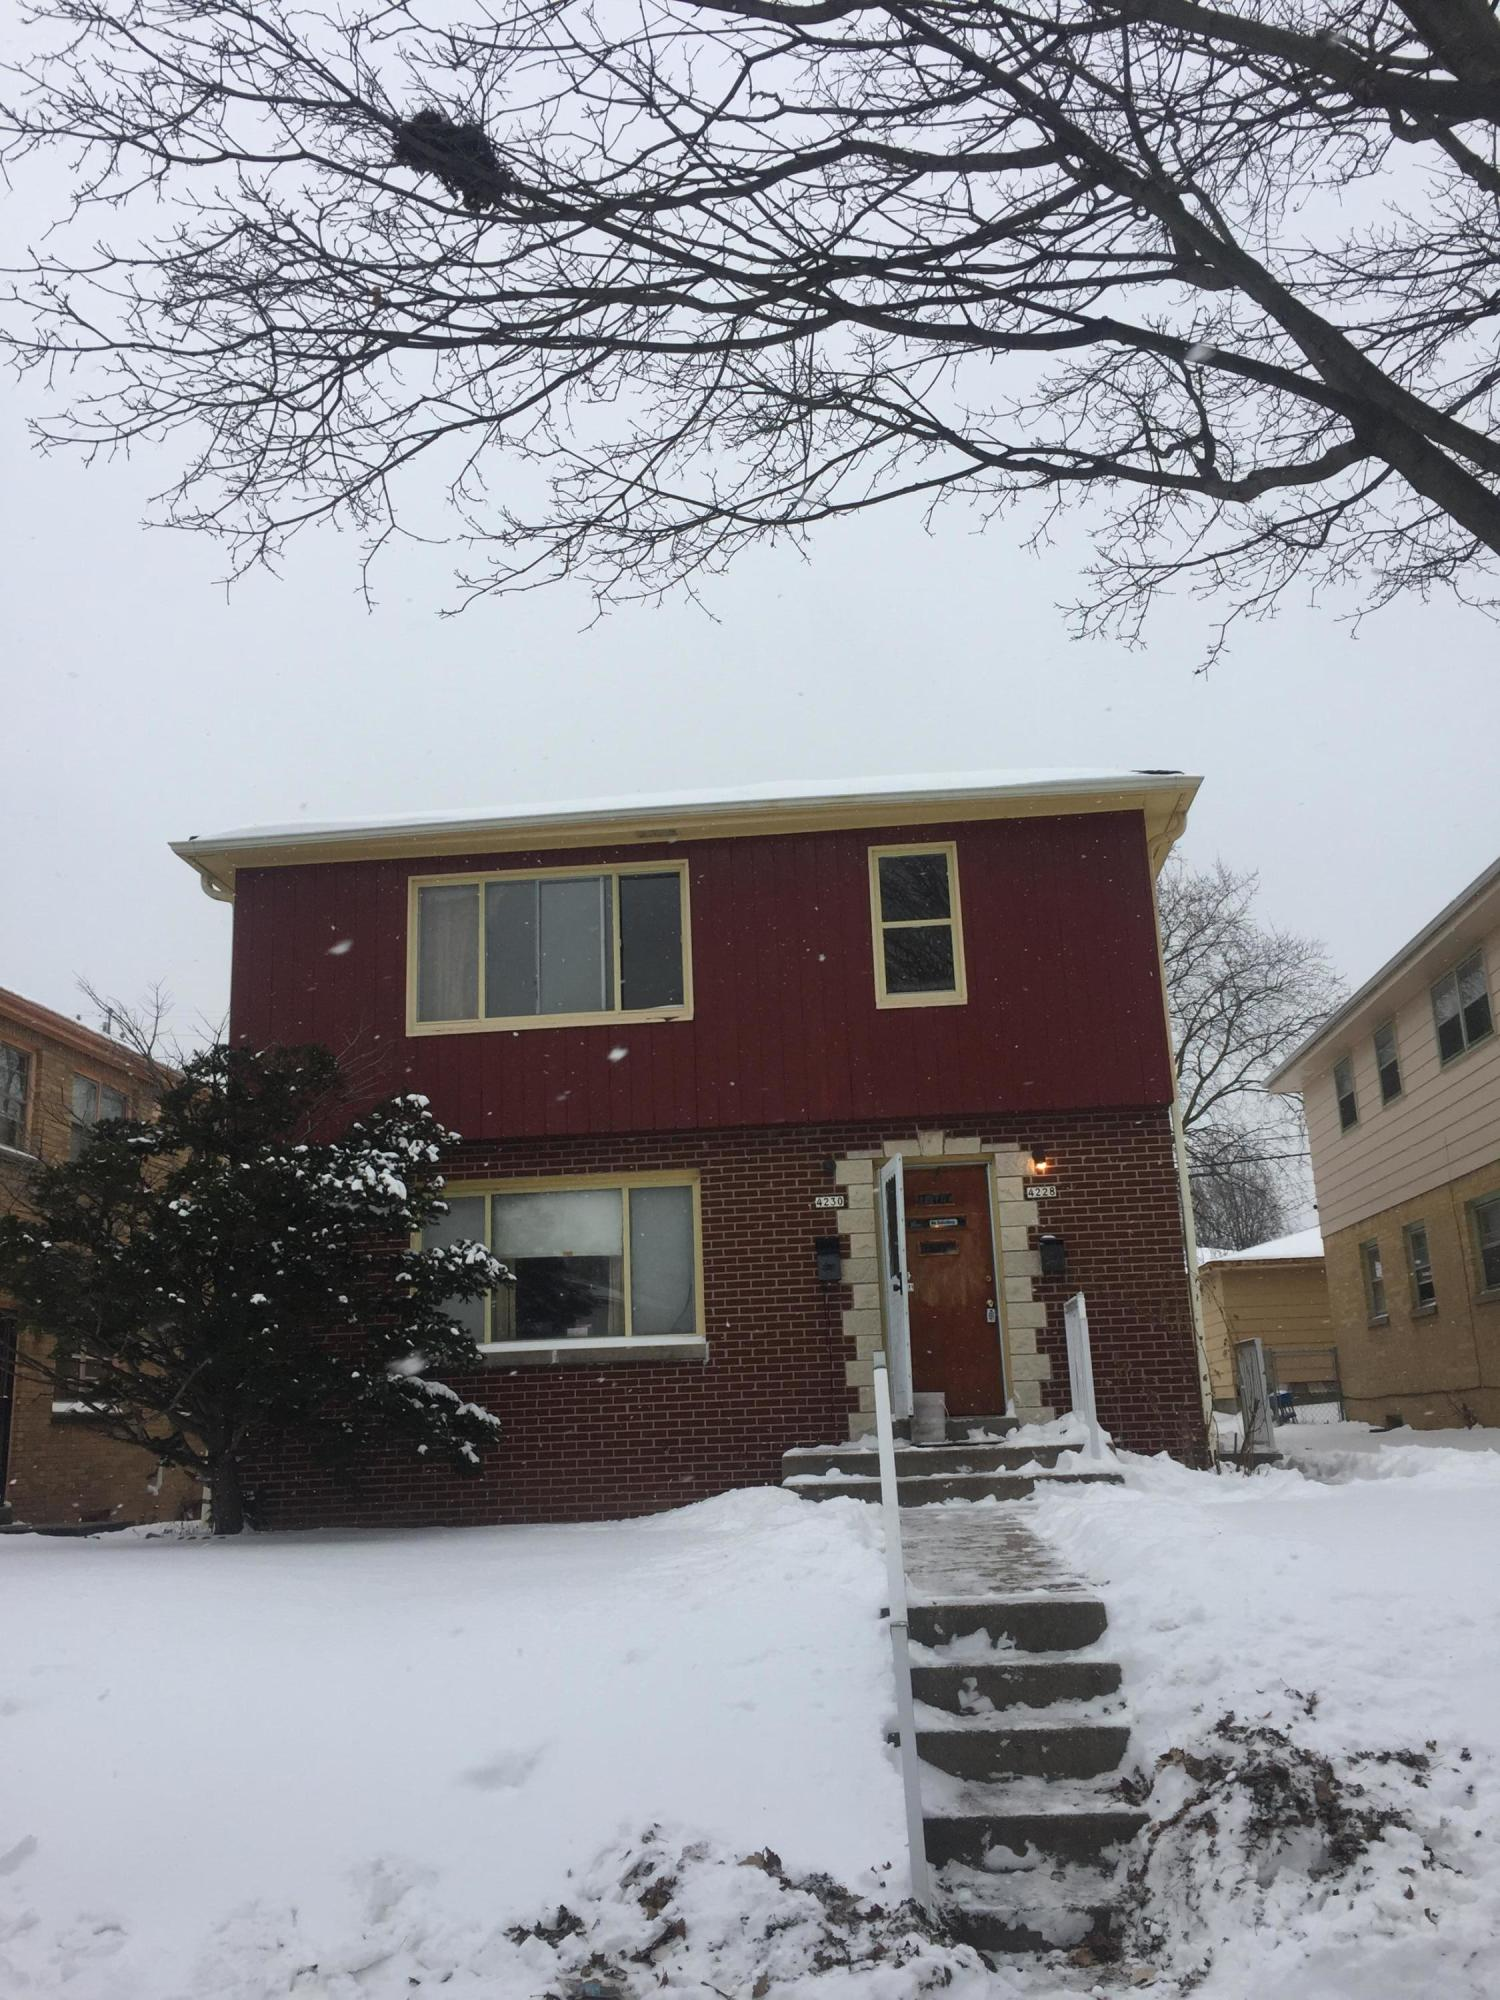 4228 68th St, Milwaukee, Wisconsin 53216, 3 Bedrooms Bedrooms, 6 Rooms Rooms,1 BathroomBathrooms,Two-Family,For Sale,68th St,1,1620427